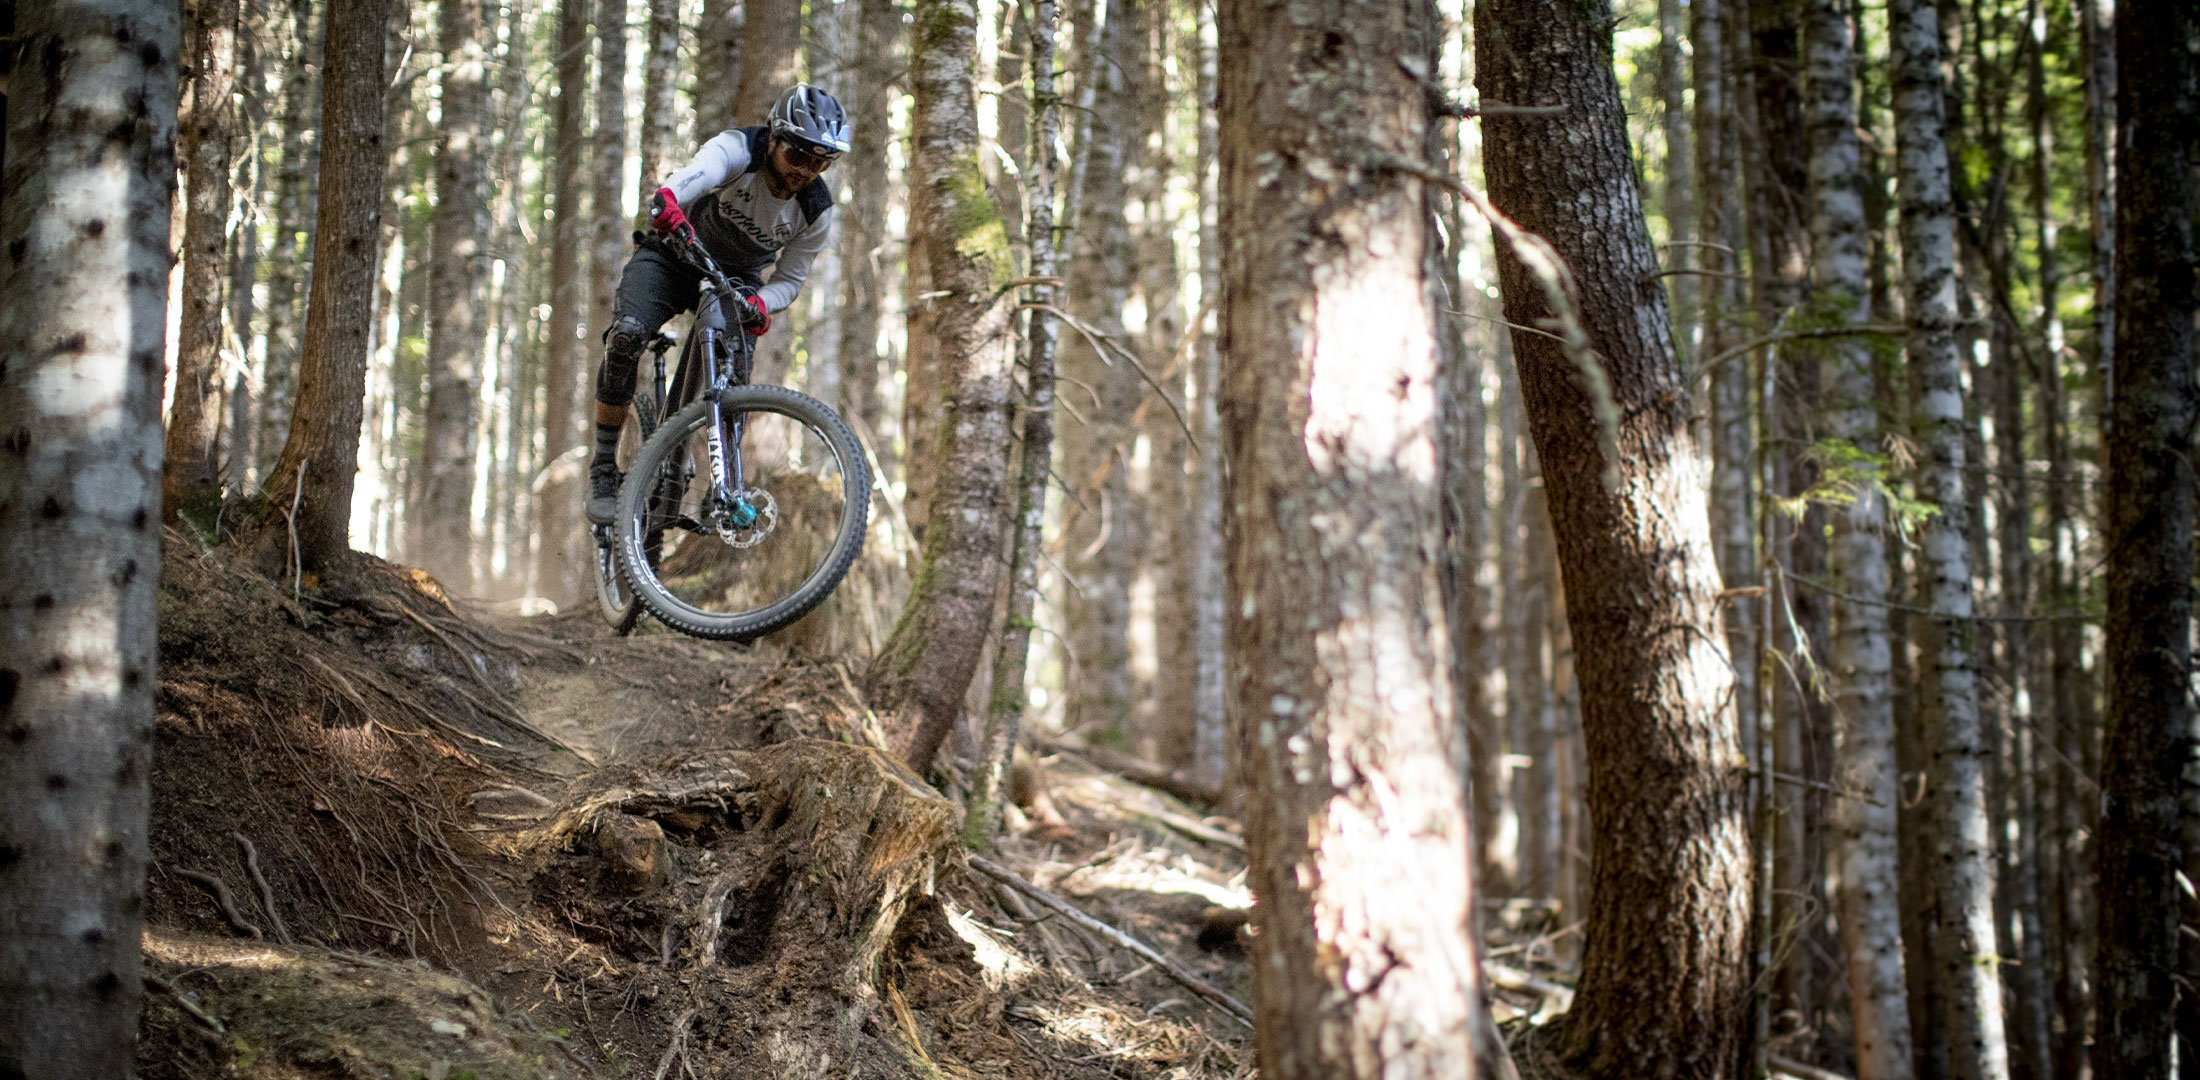 Evil Offering 2021 riding in forest